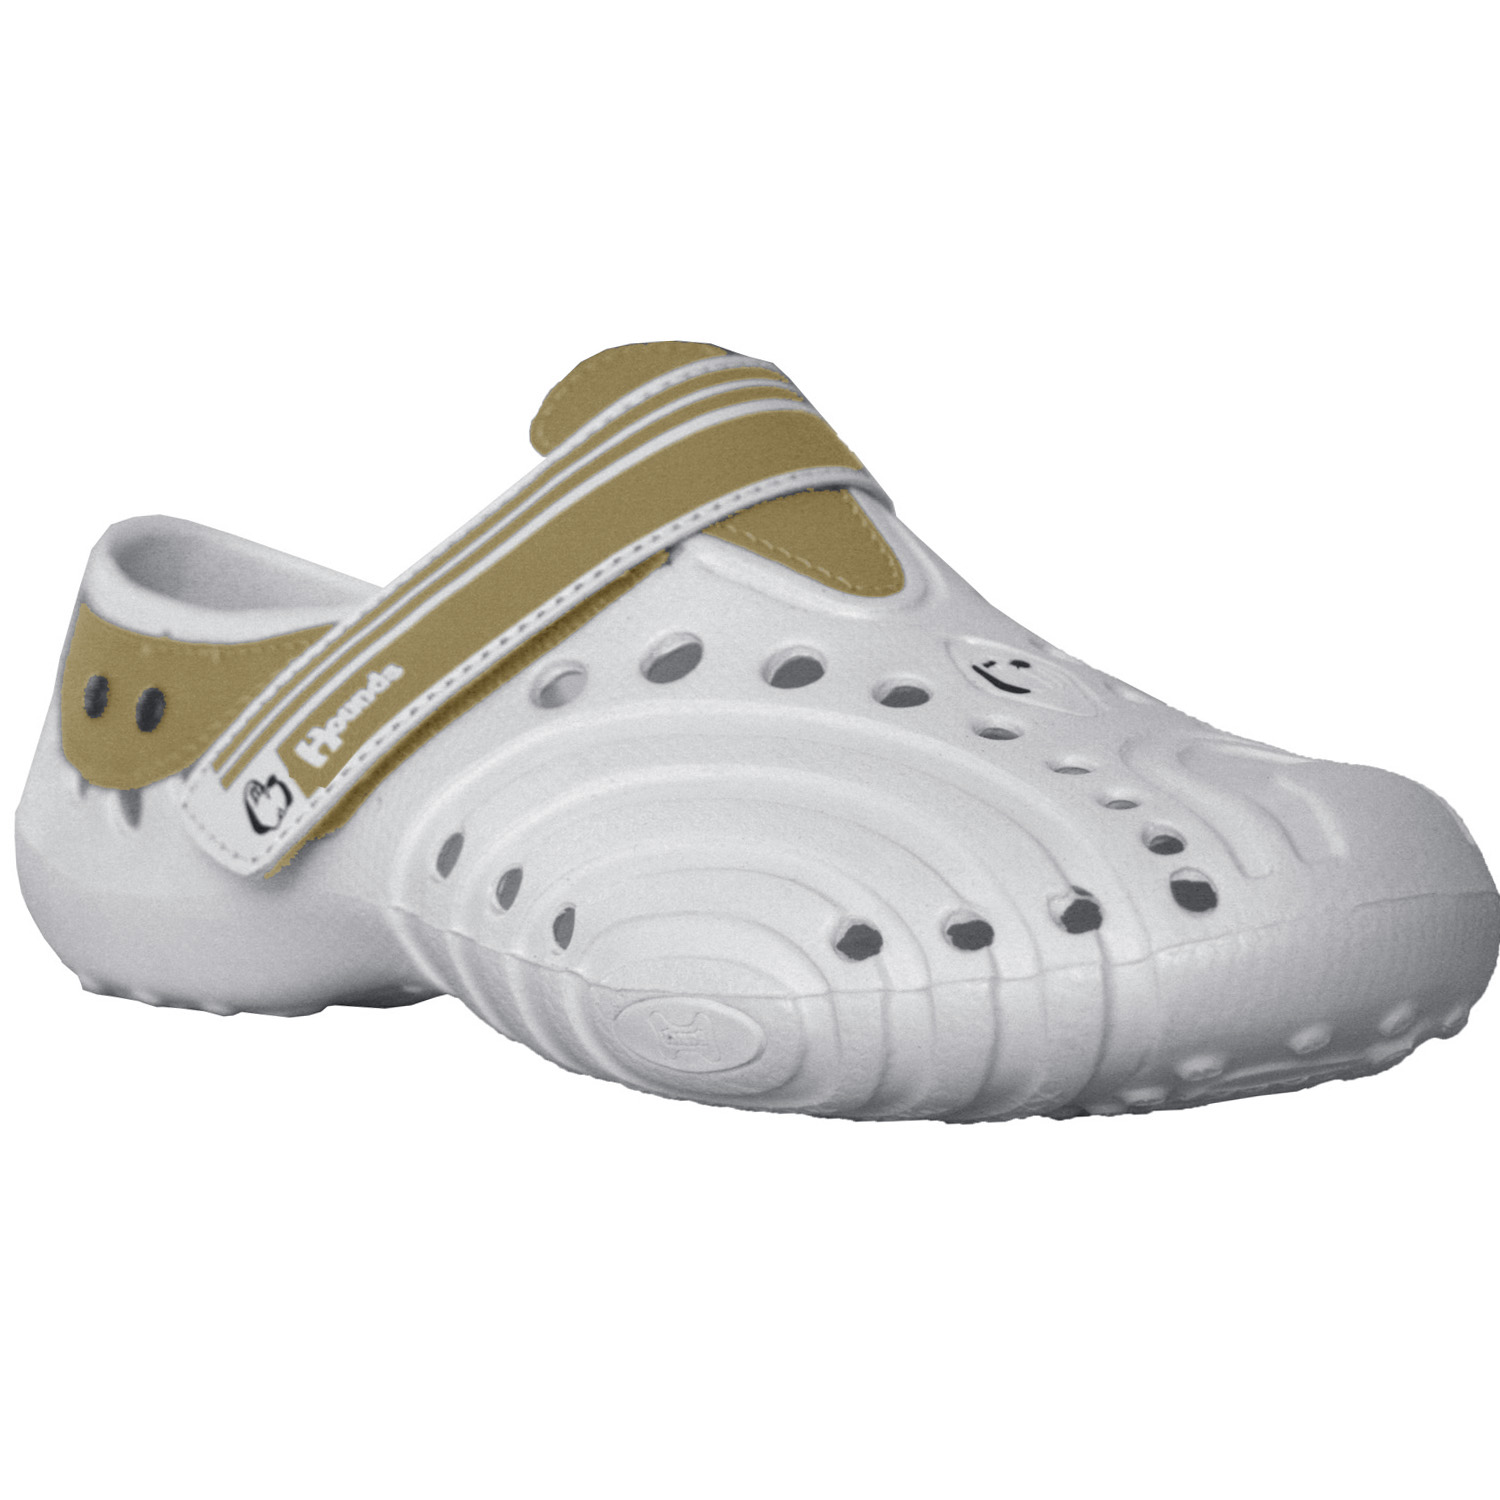 Women's Hounds Ultralite Shoes White with Tan Size 7-8